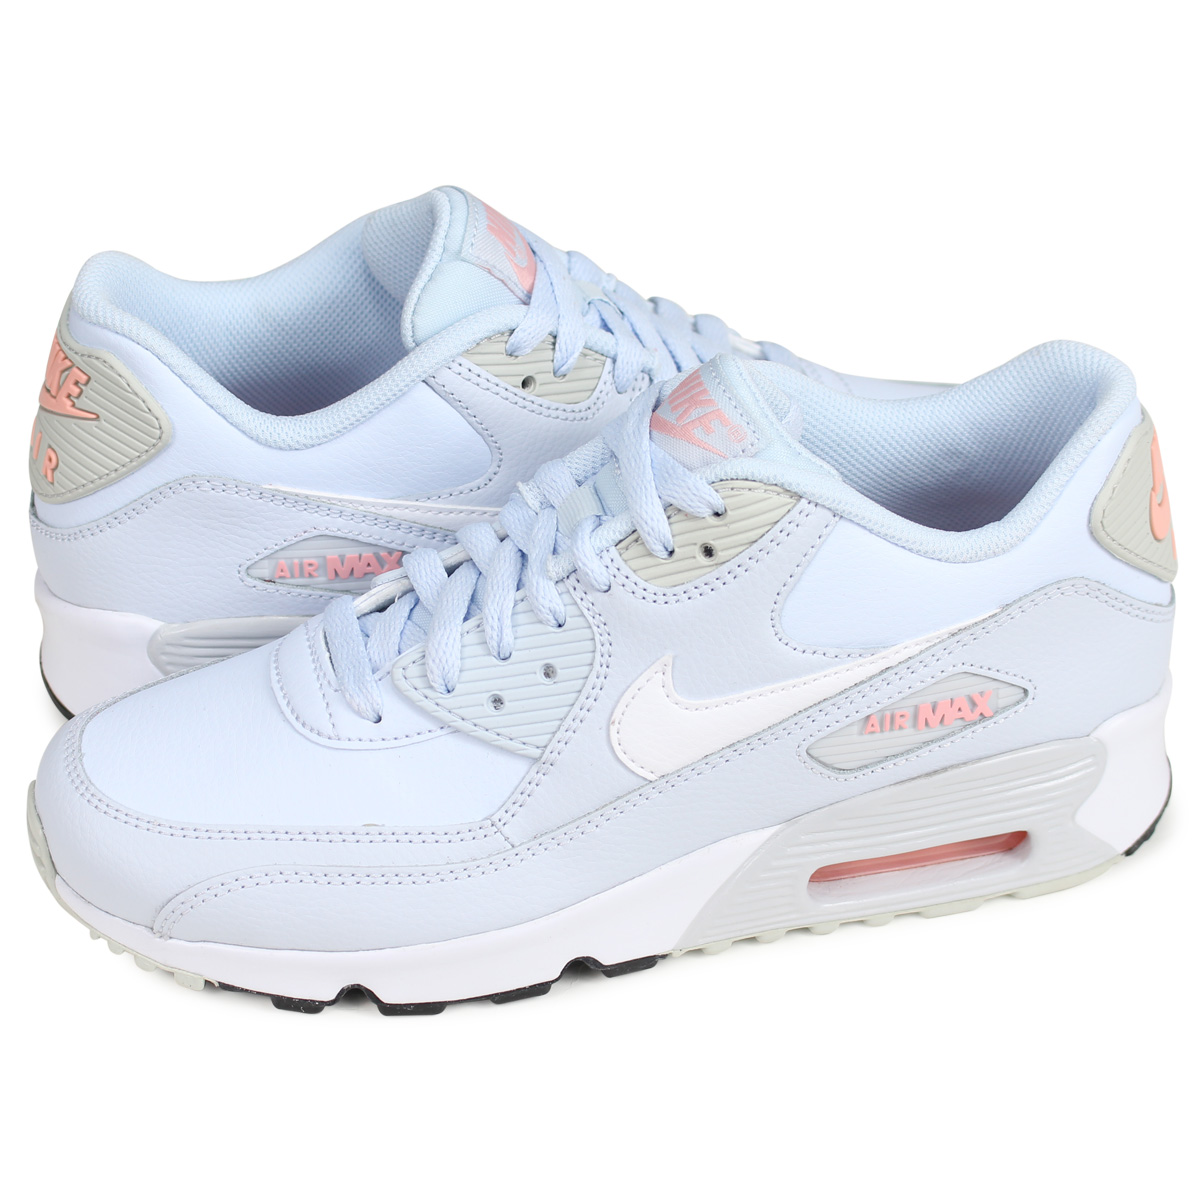 Nike NIKE Air Max 90 sneakers Lady's AIR MAX 90 LEATHER GS light blue 833,376 406